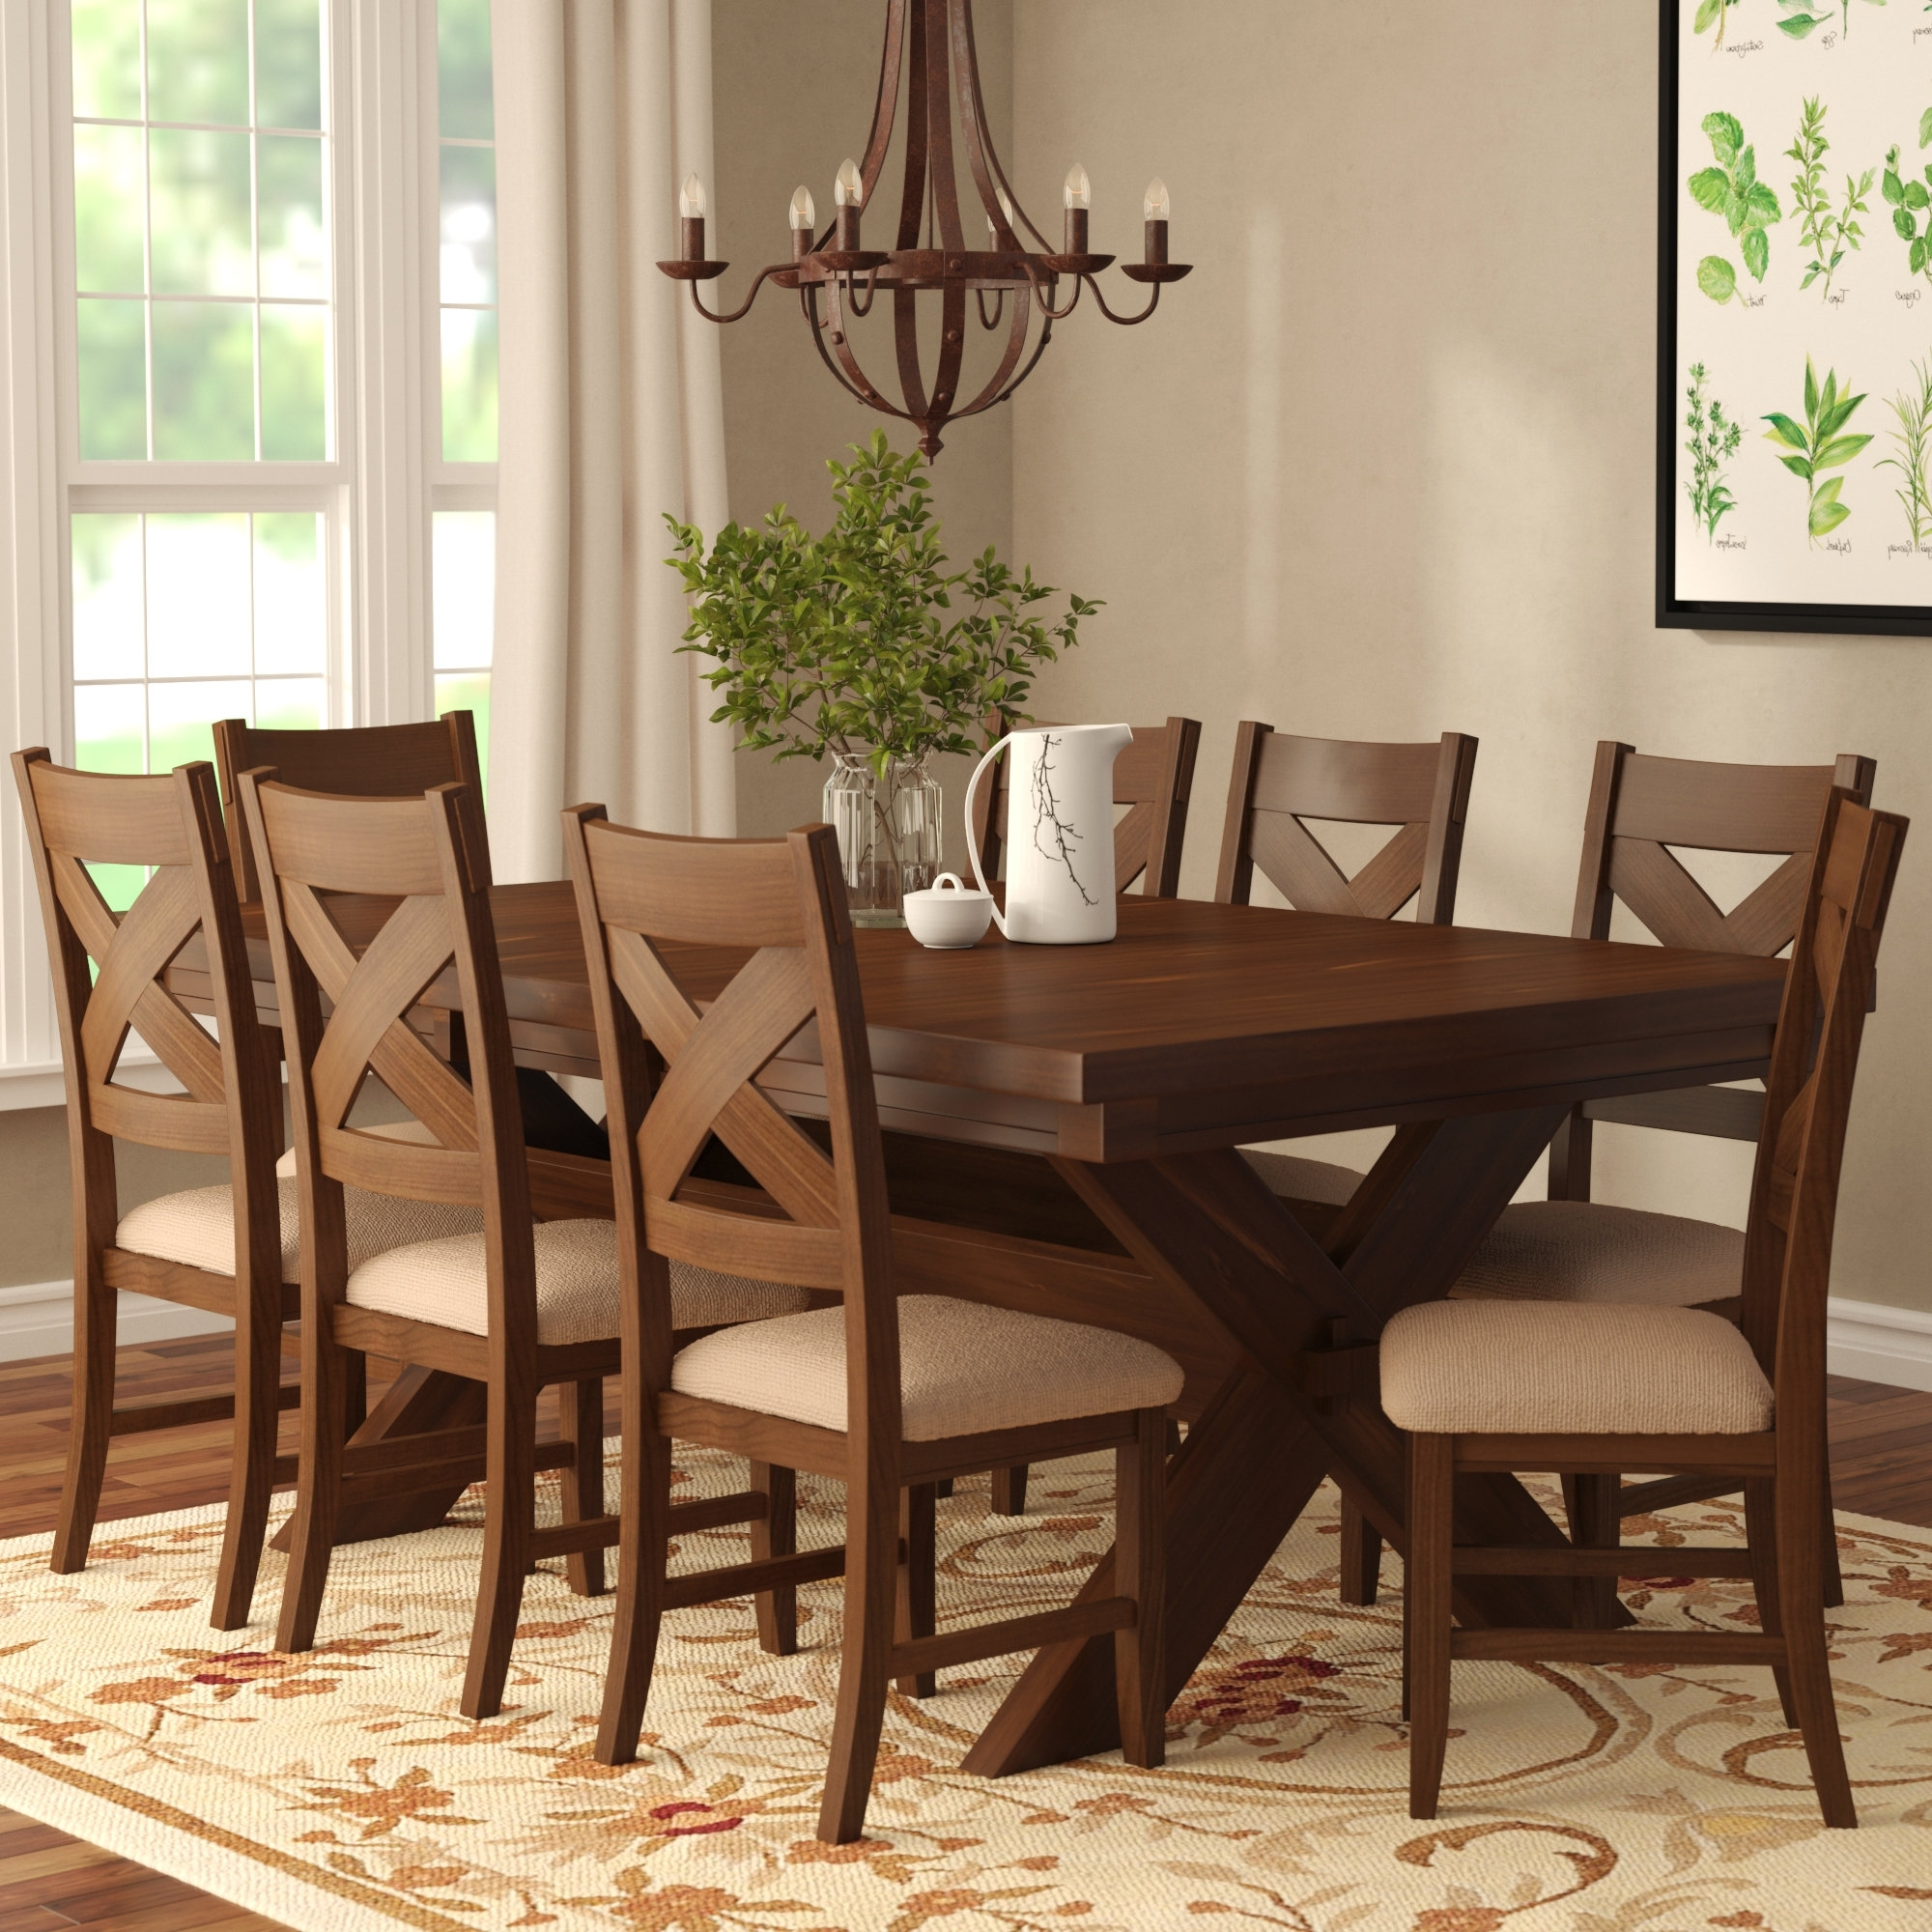 Preferred Laurel Foundry Modern Farmhouse Isabell 9 Piece Dining Set & Reviews Within Caden 7 Piece Dining Sets With Upholstered Side Chair (View 17 of 25)